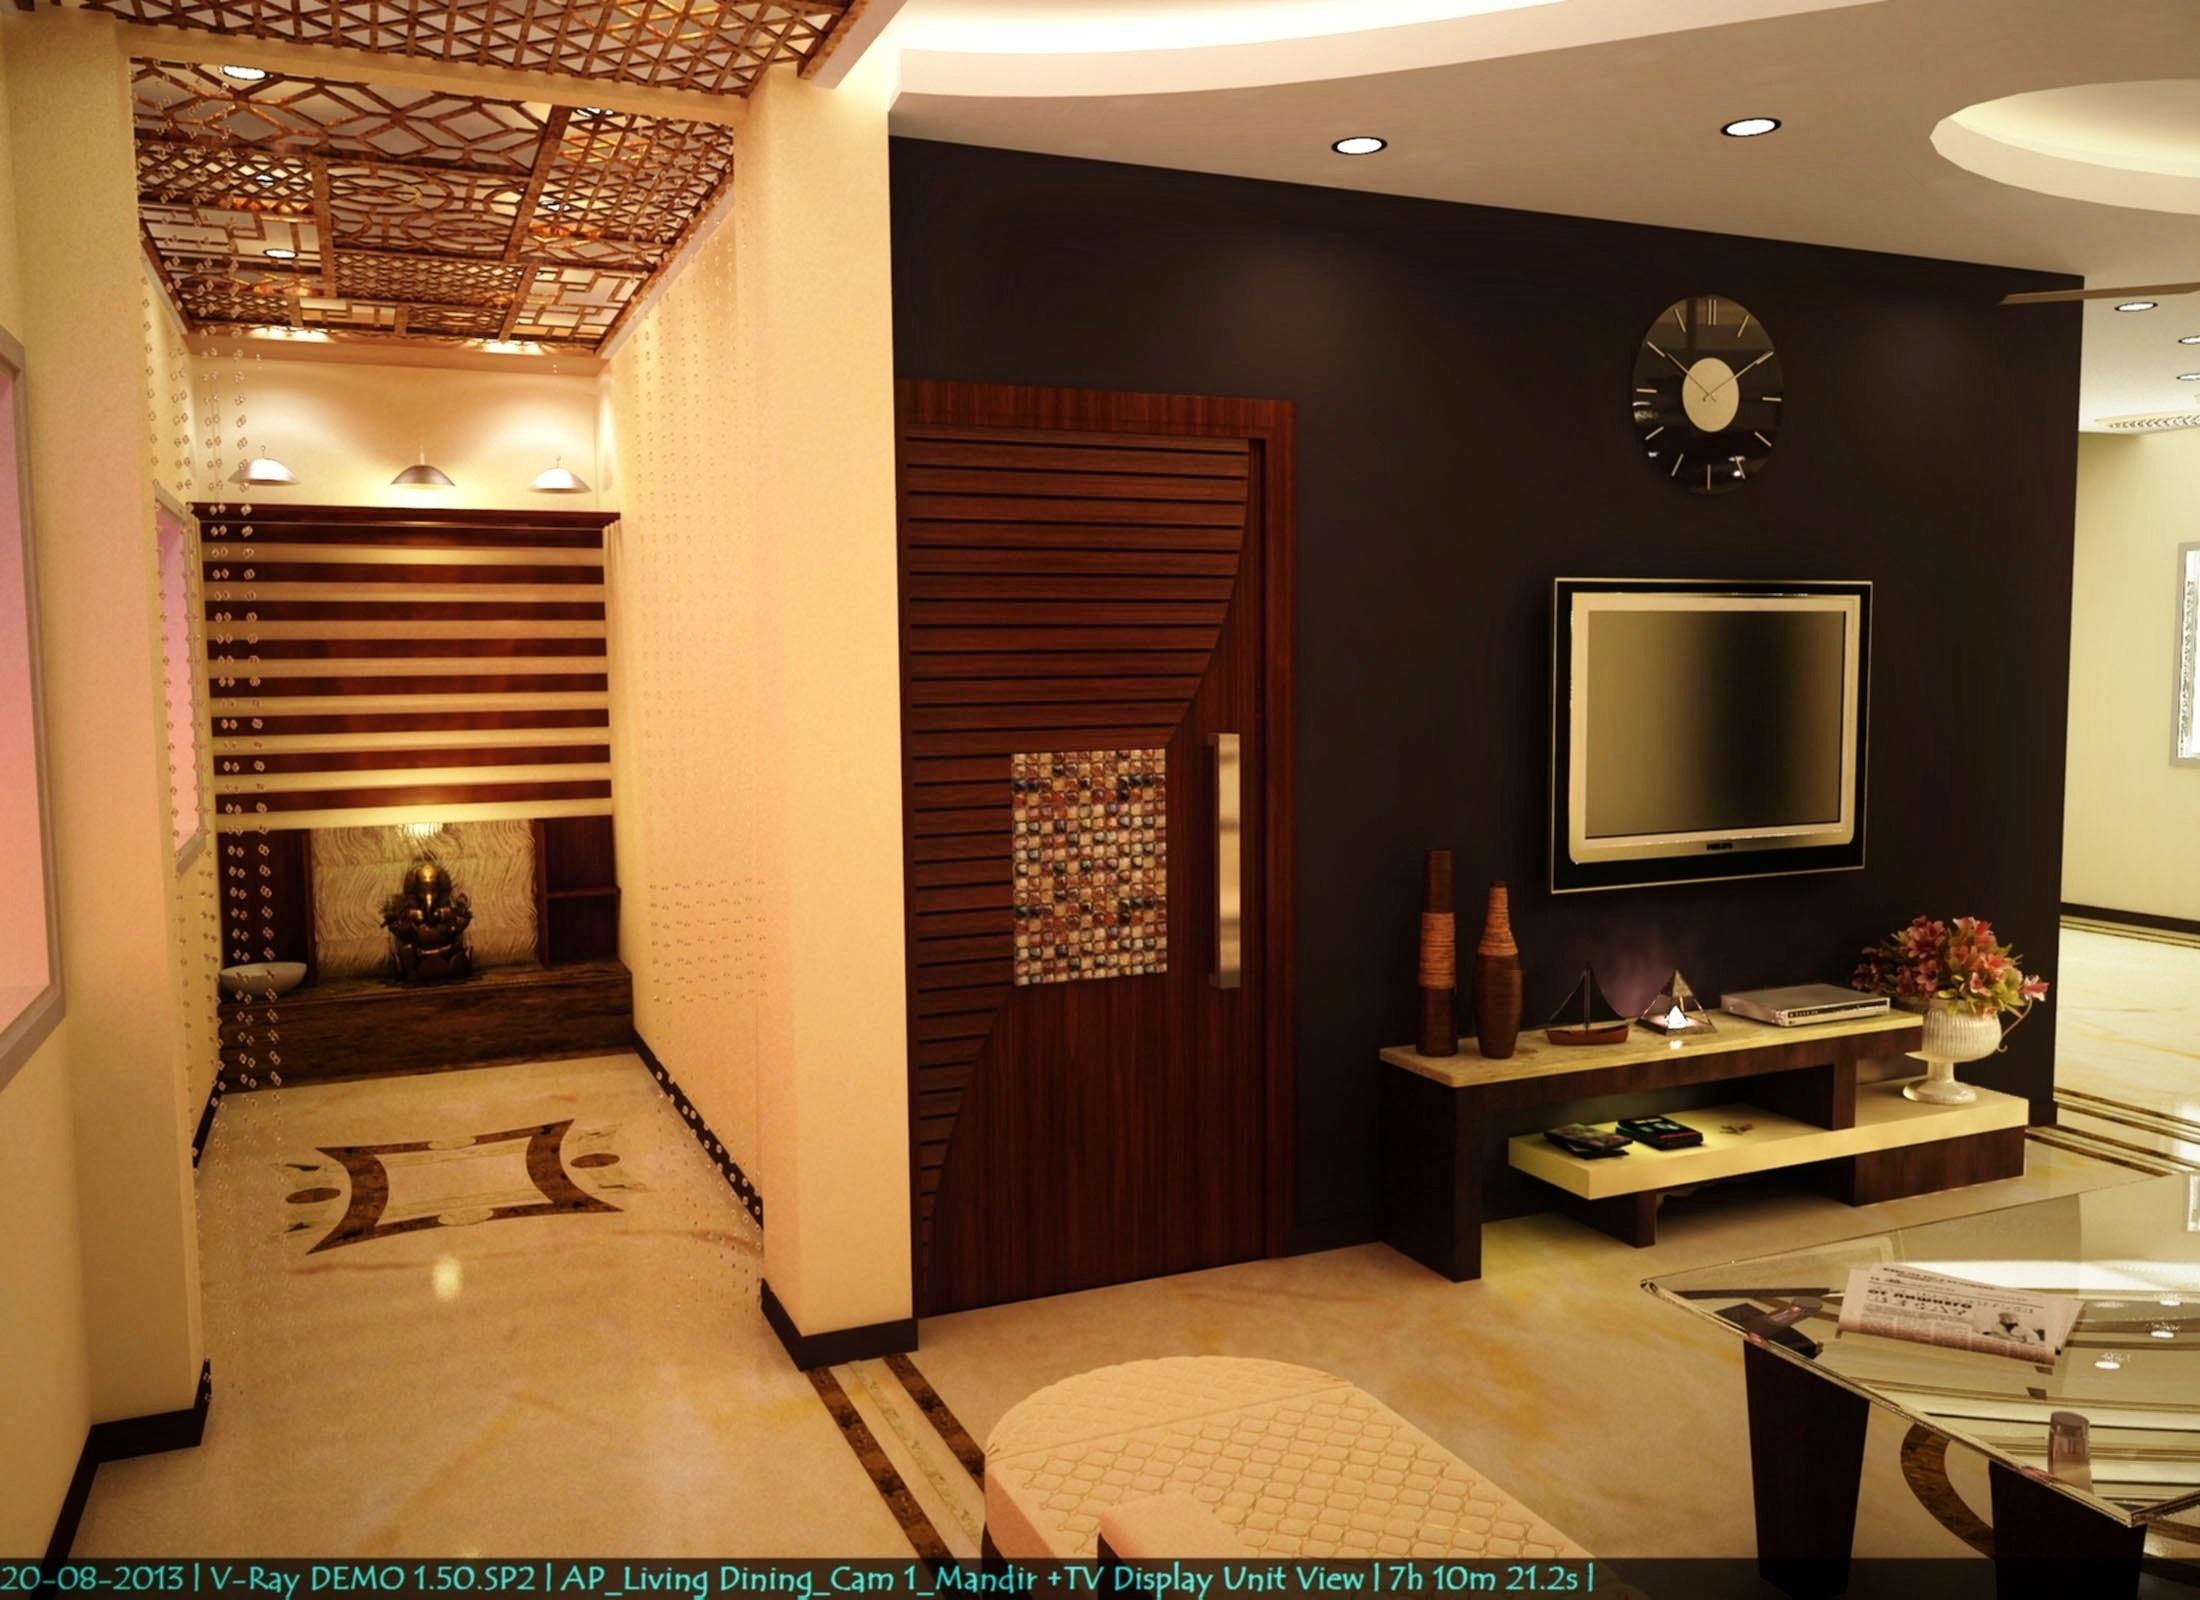 simple pop ceiling designs for living room in india interior design of small indian mandir n tv unit view - gharexpert